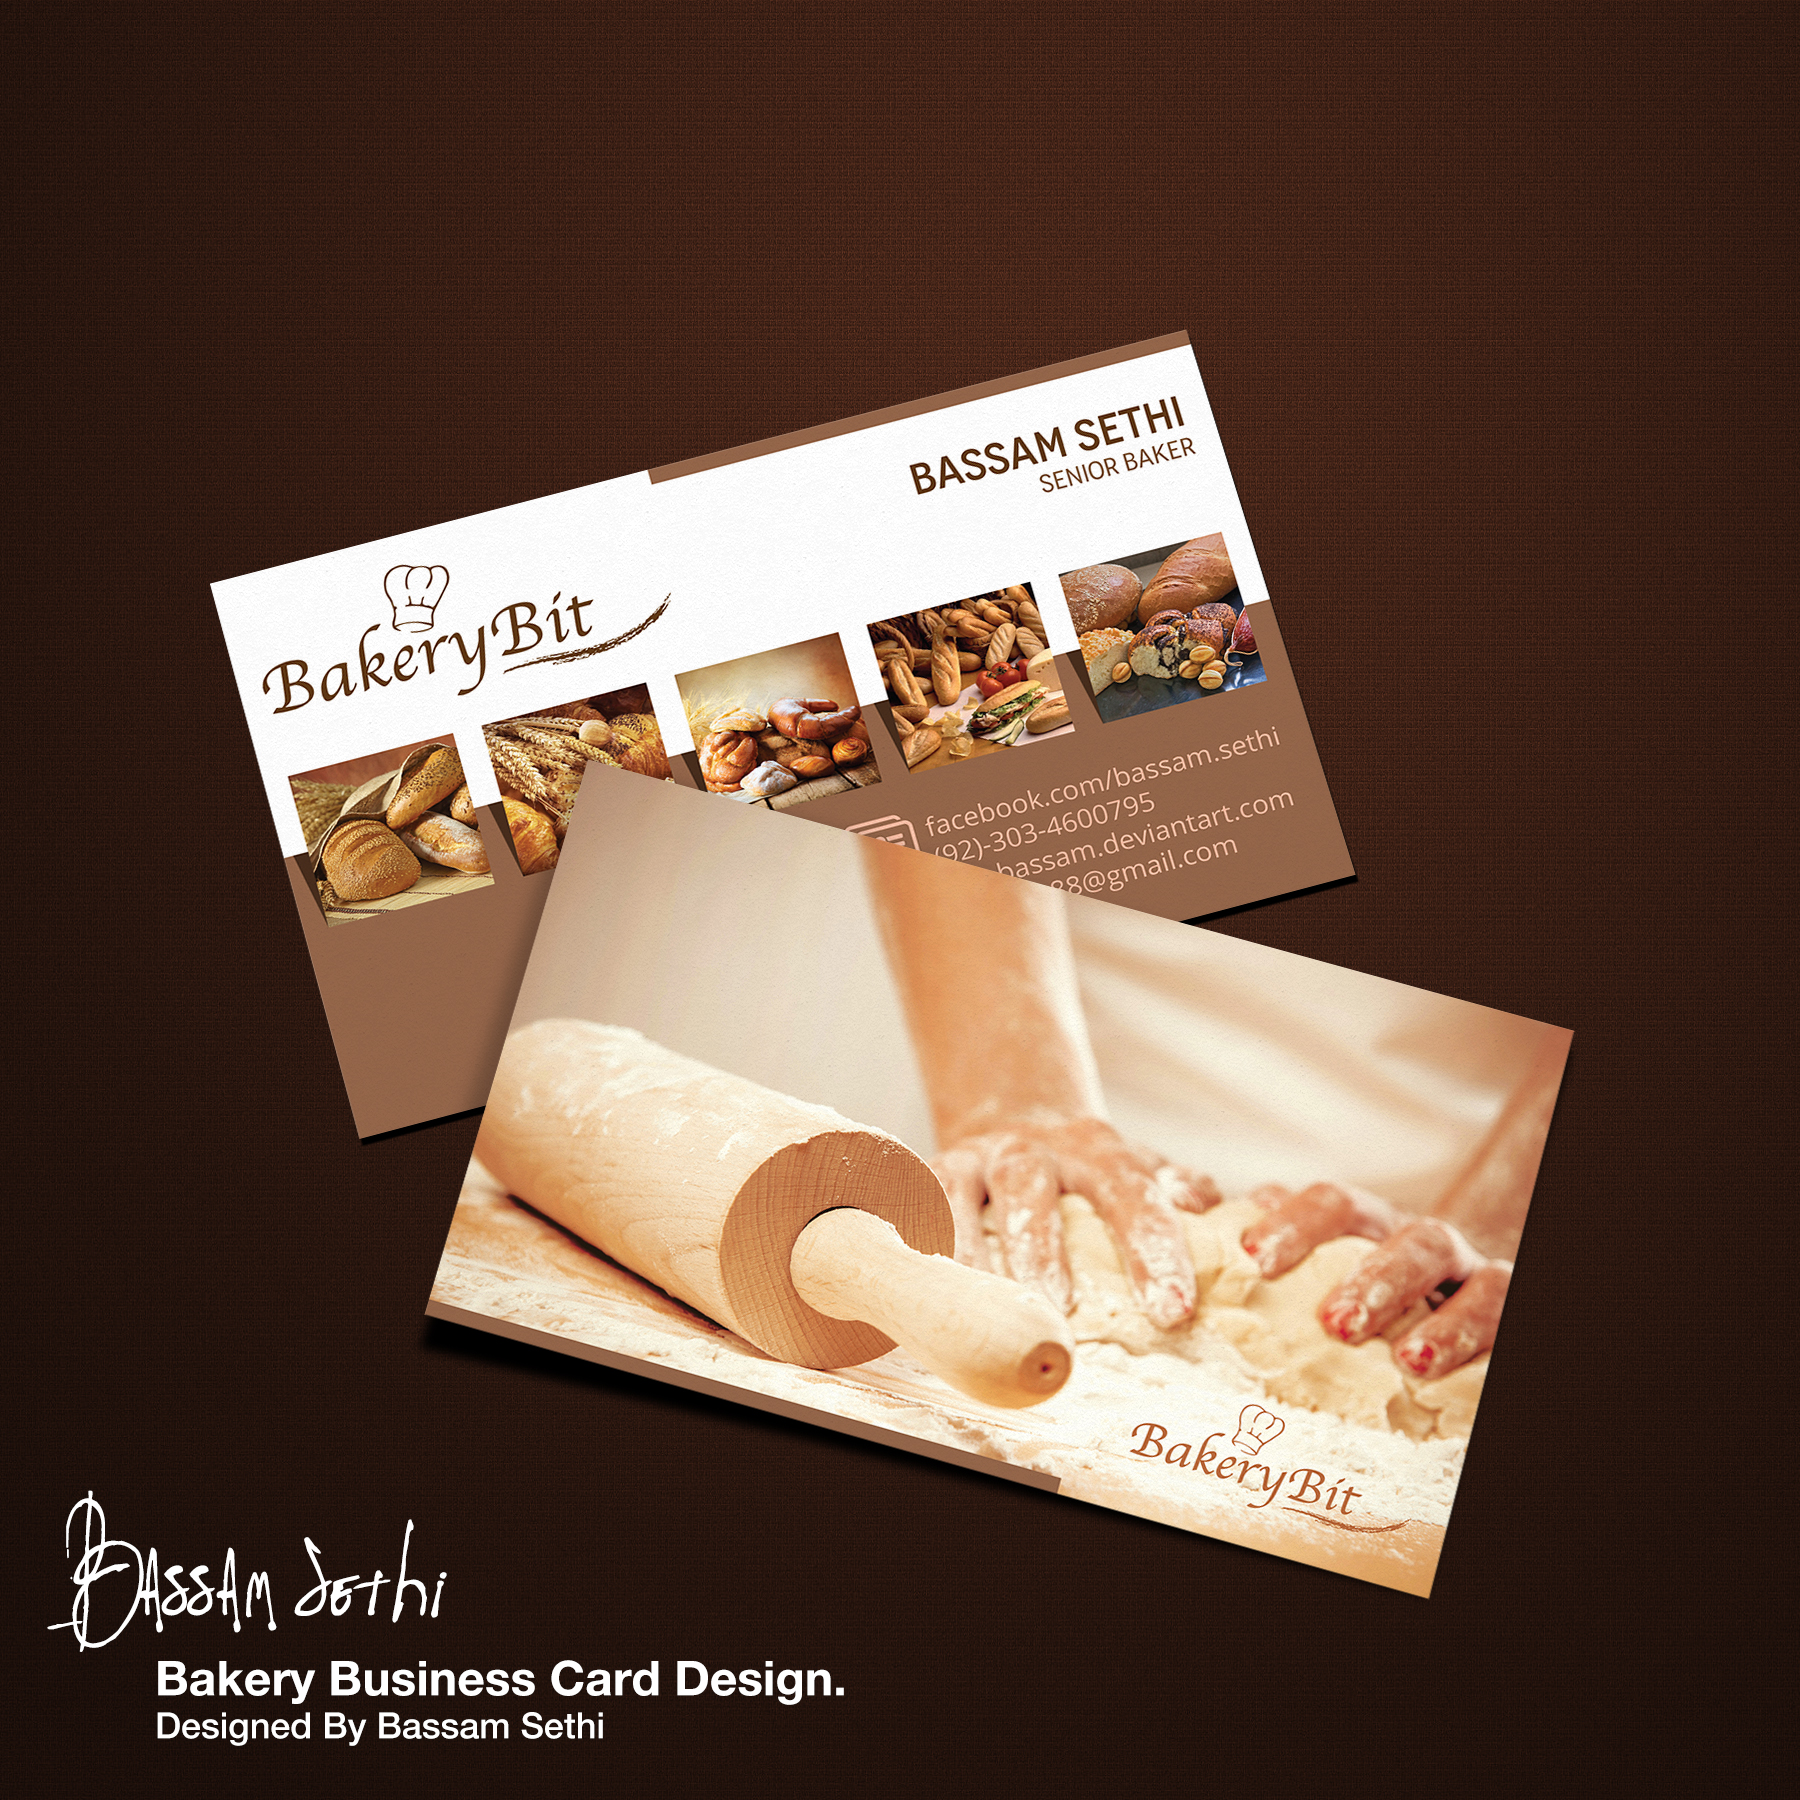 Bakery business card sample by cap bassam on deviantart bakery business card sample by cap bassam reheart Gallery